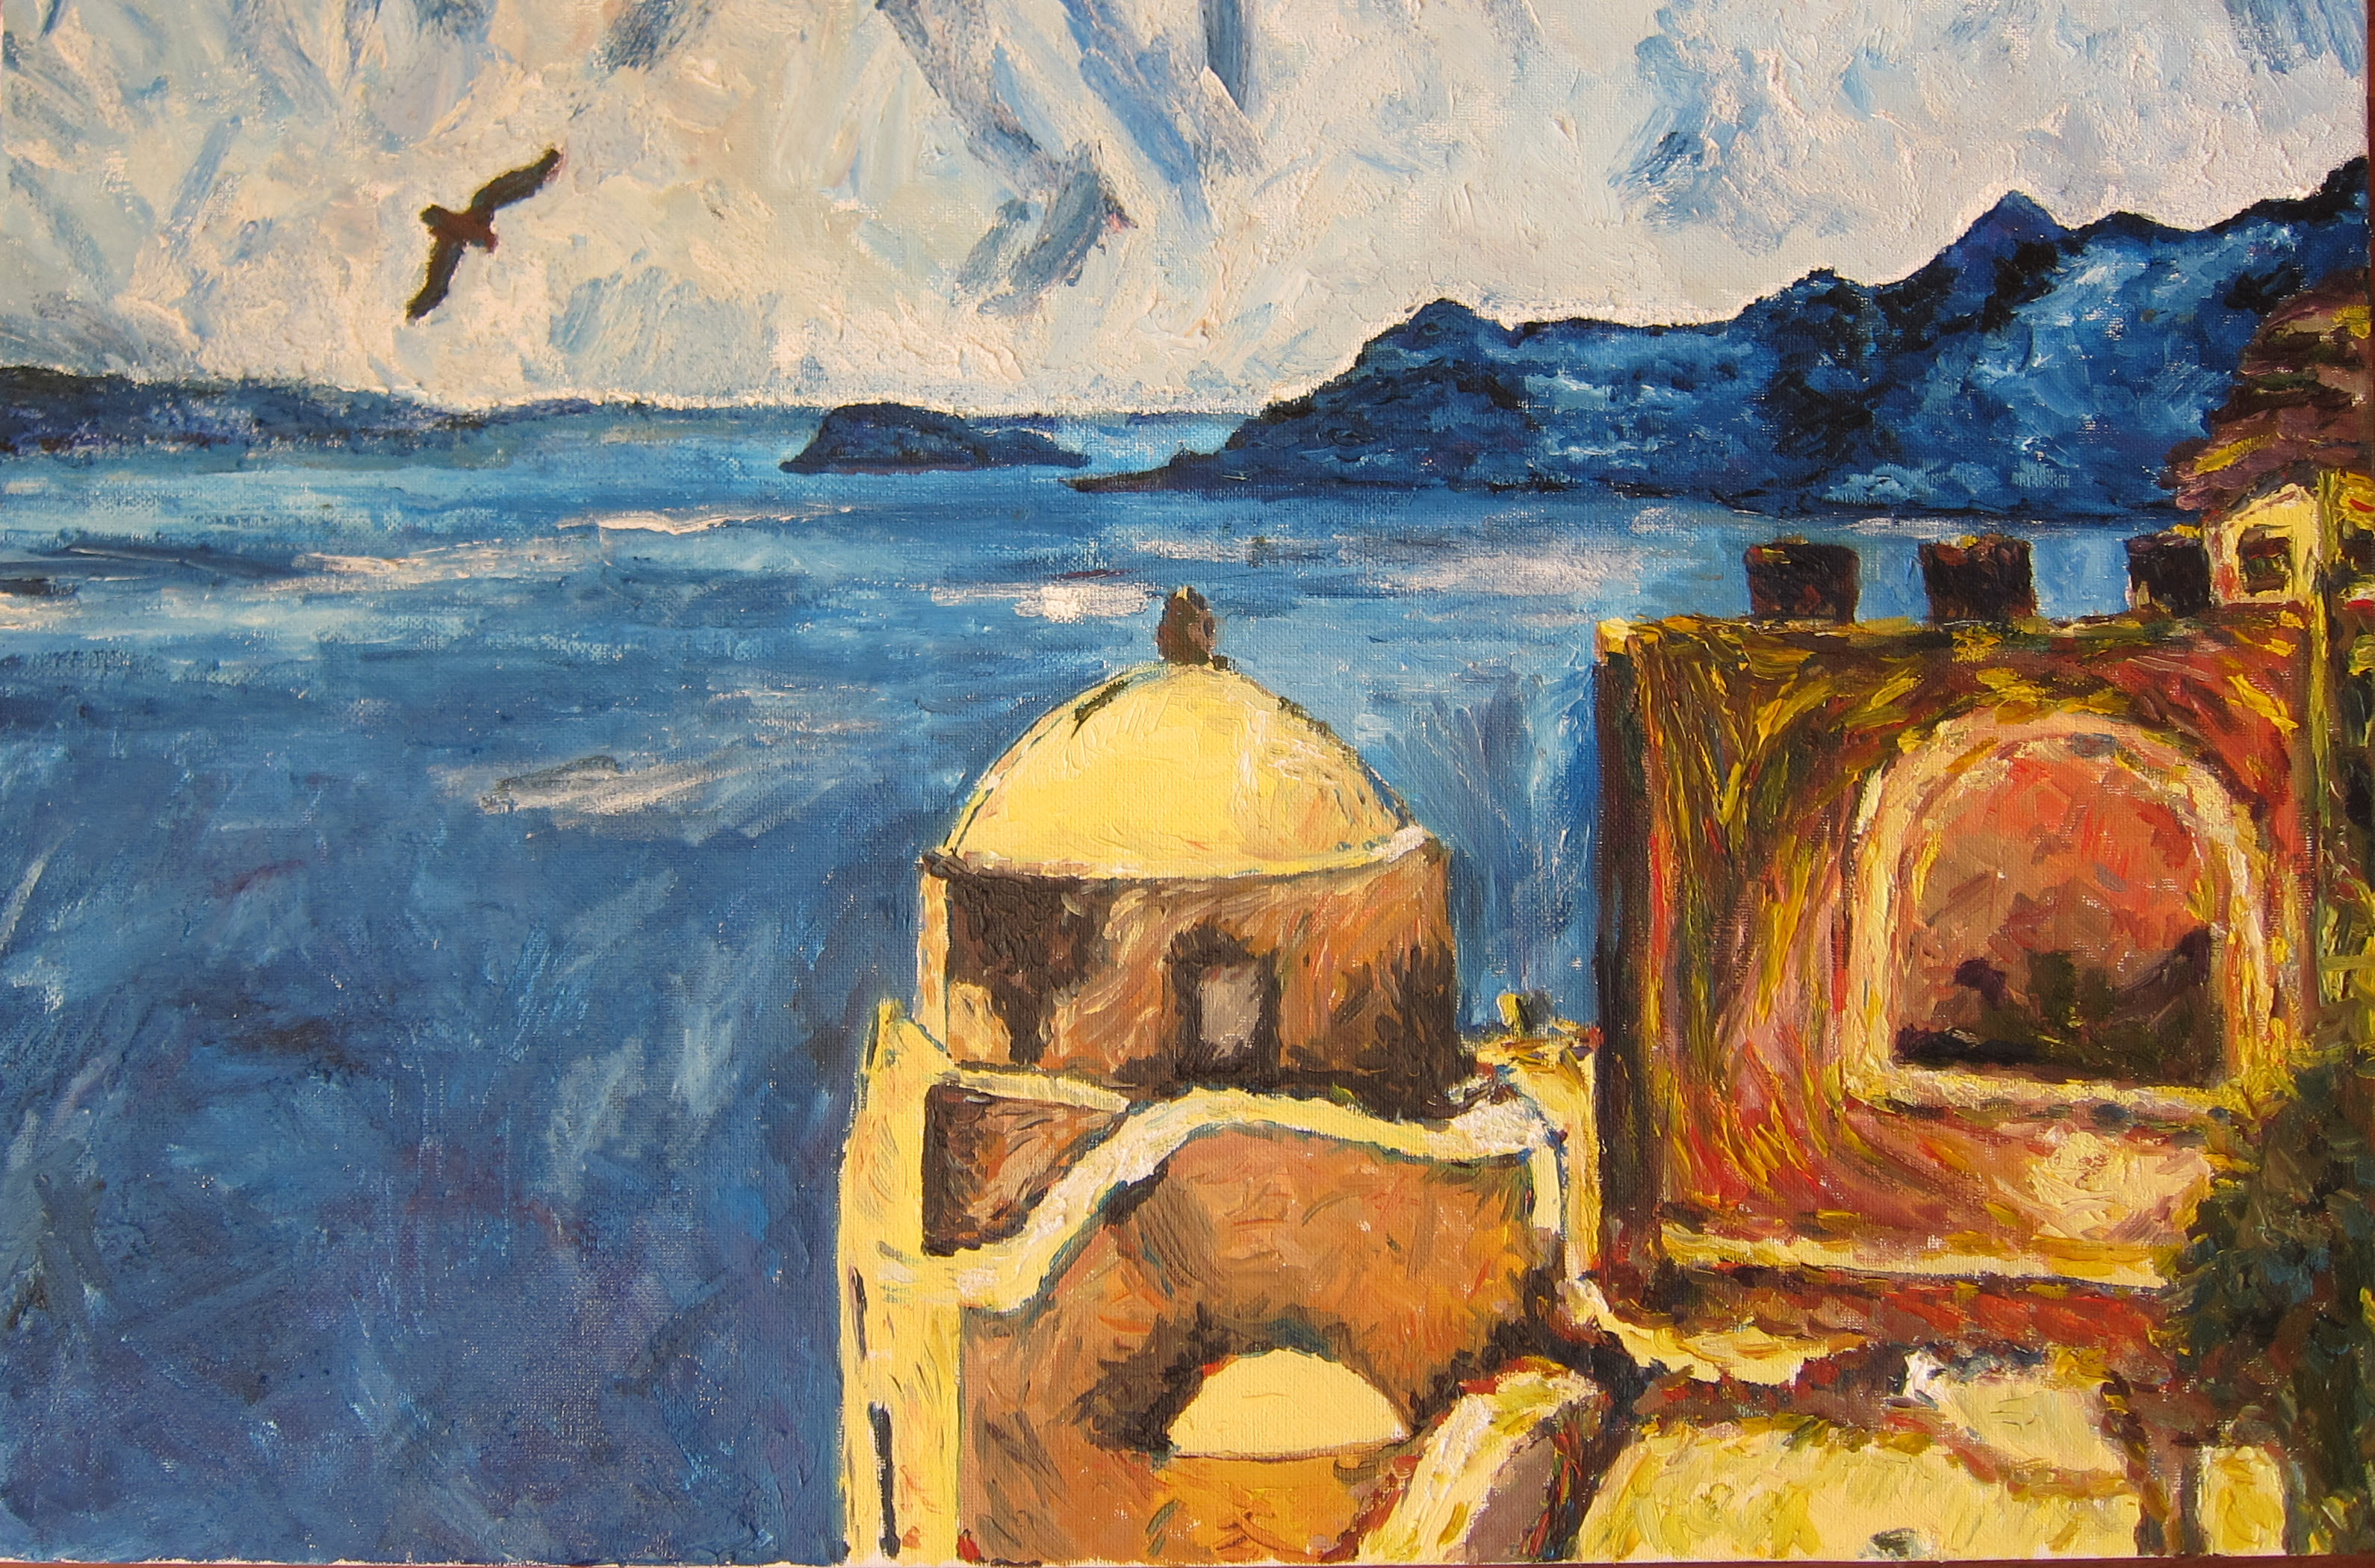 Santorini. A.Lefbard, 2015, oil on canvas